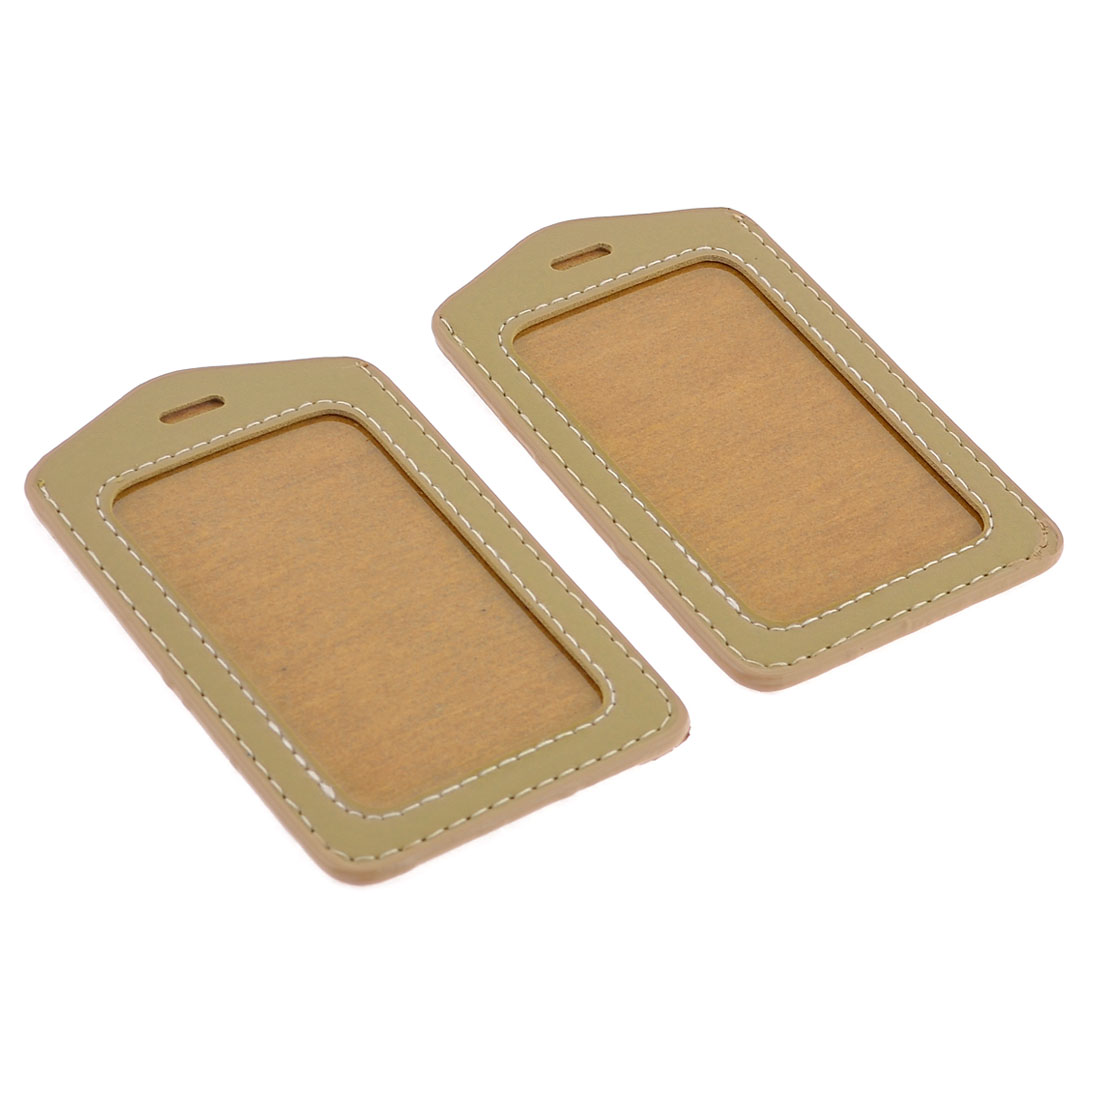 2 Pcs Light Brown Faux Leather Office Work Badge Holder